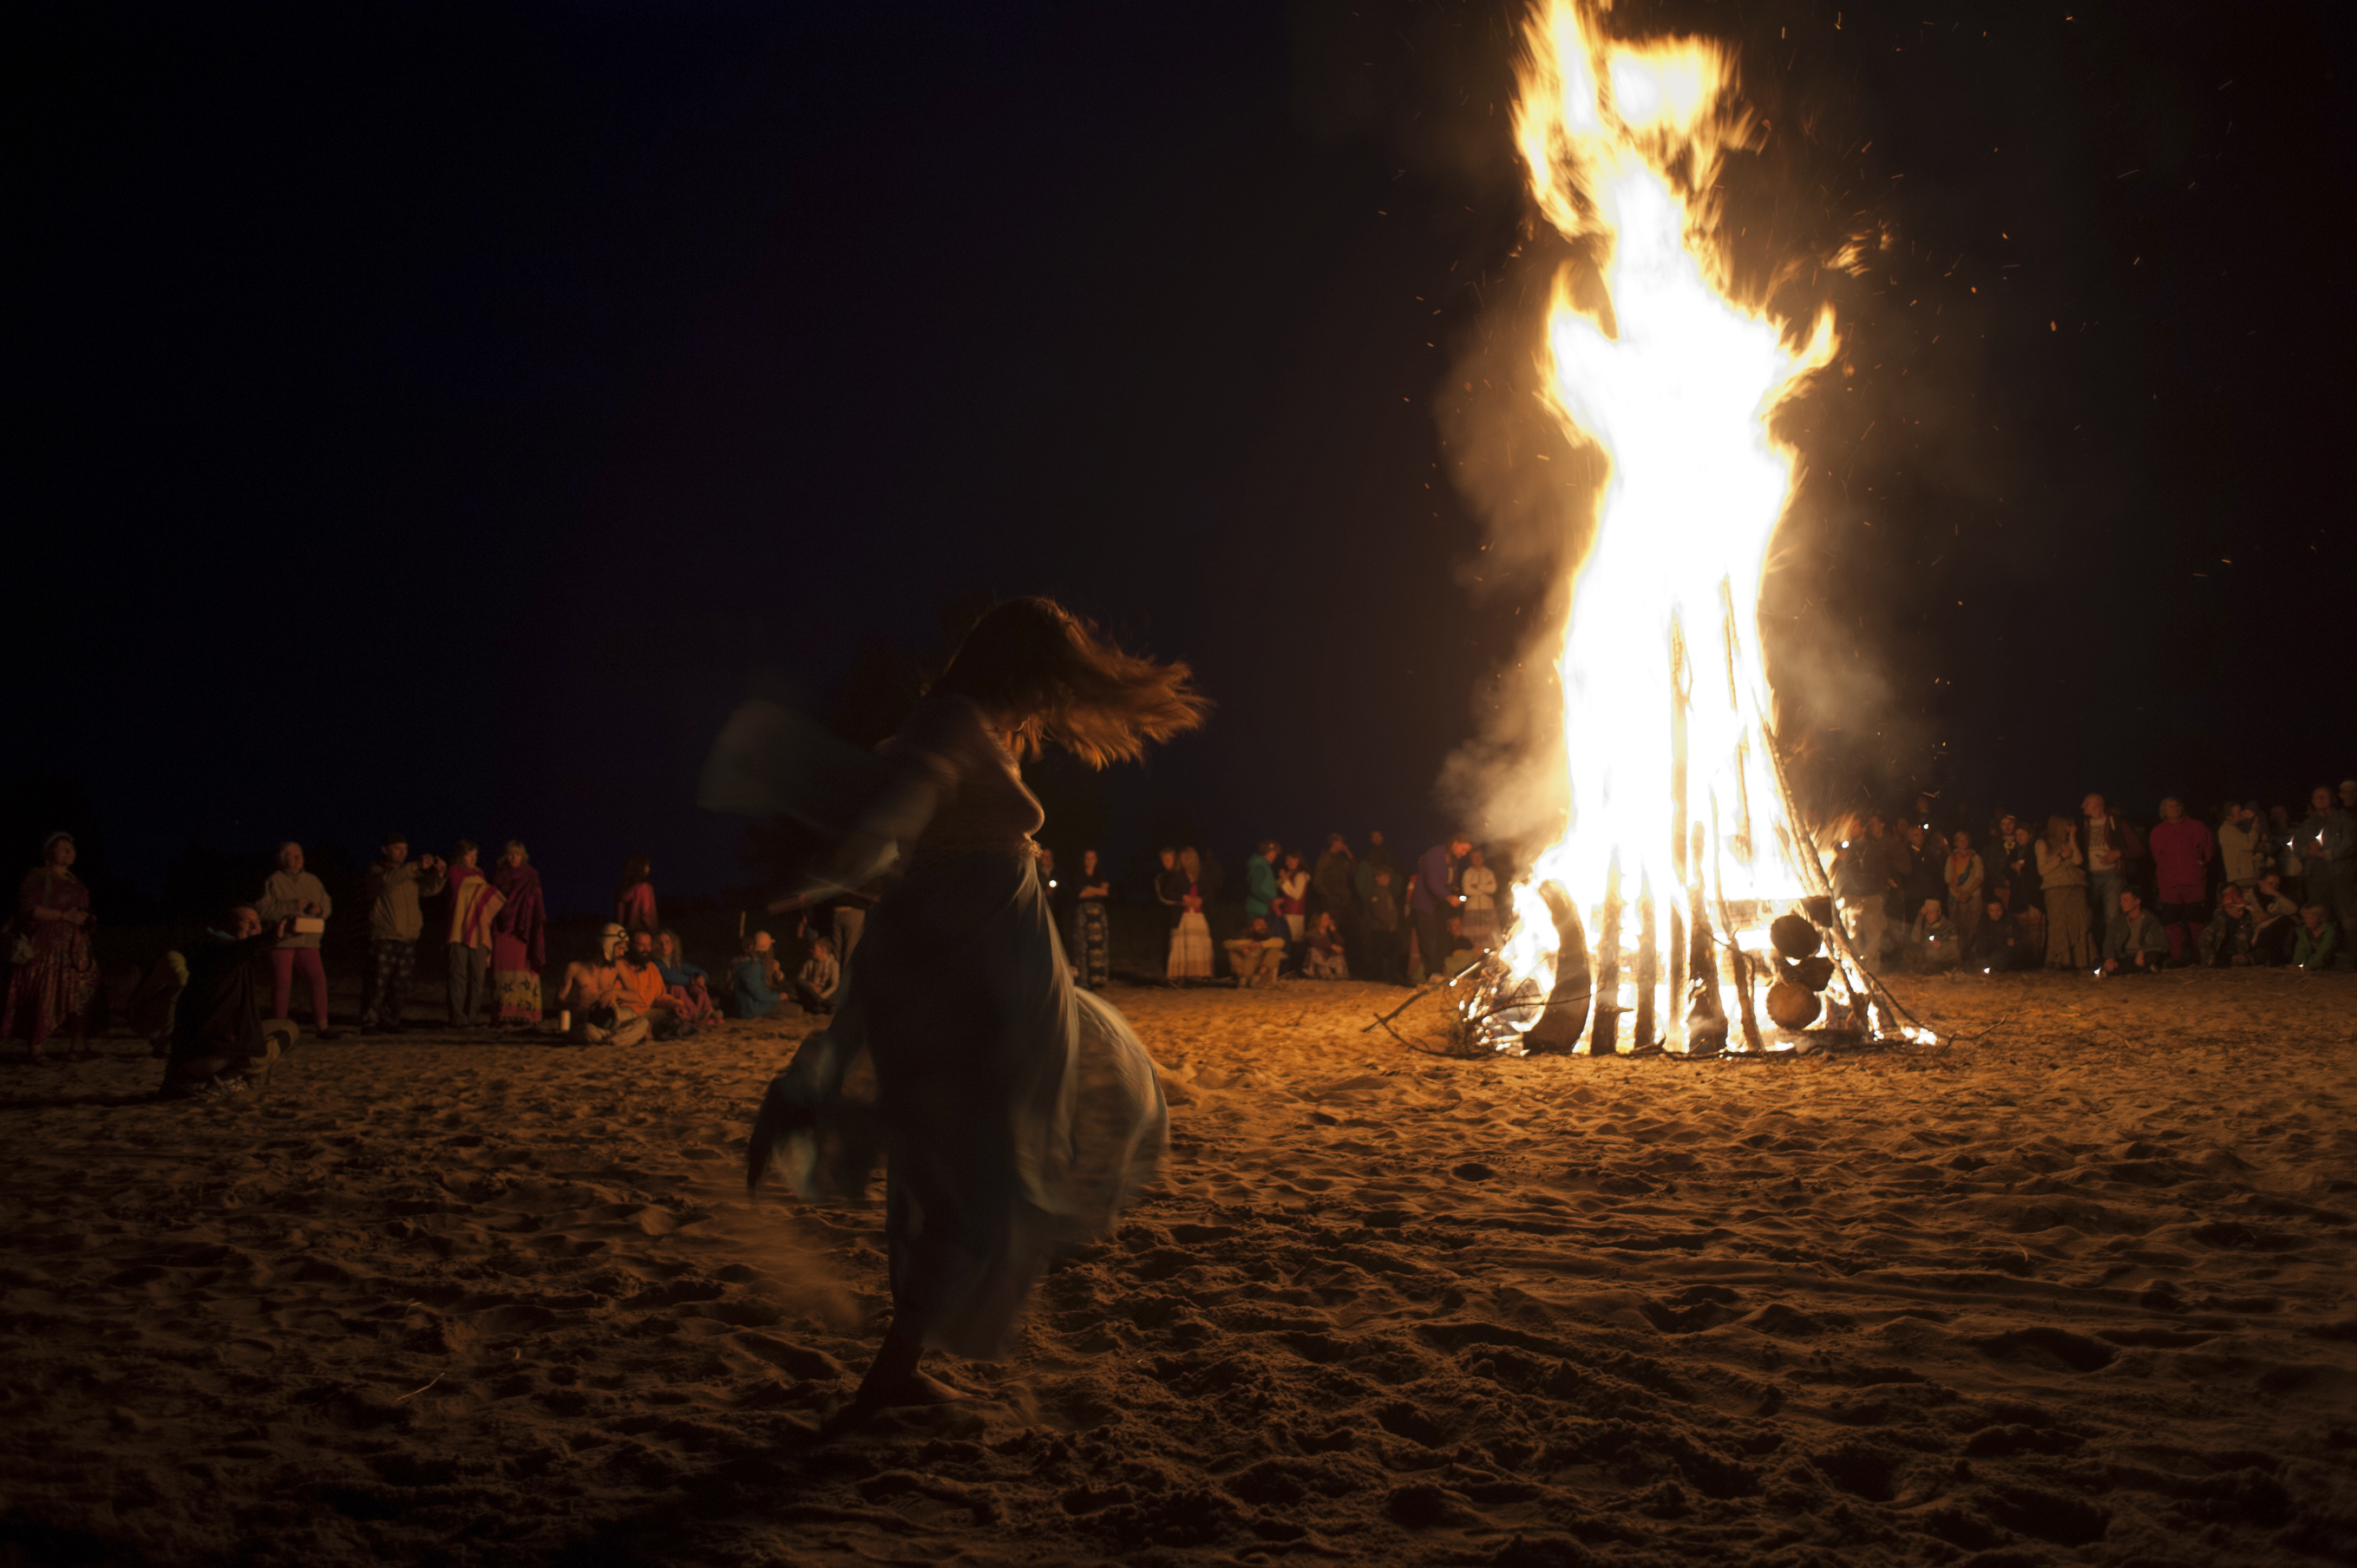 woman dancing bonfire